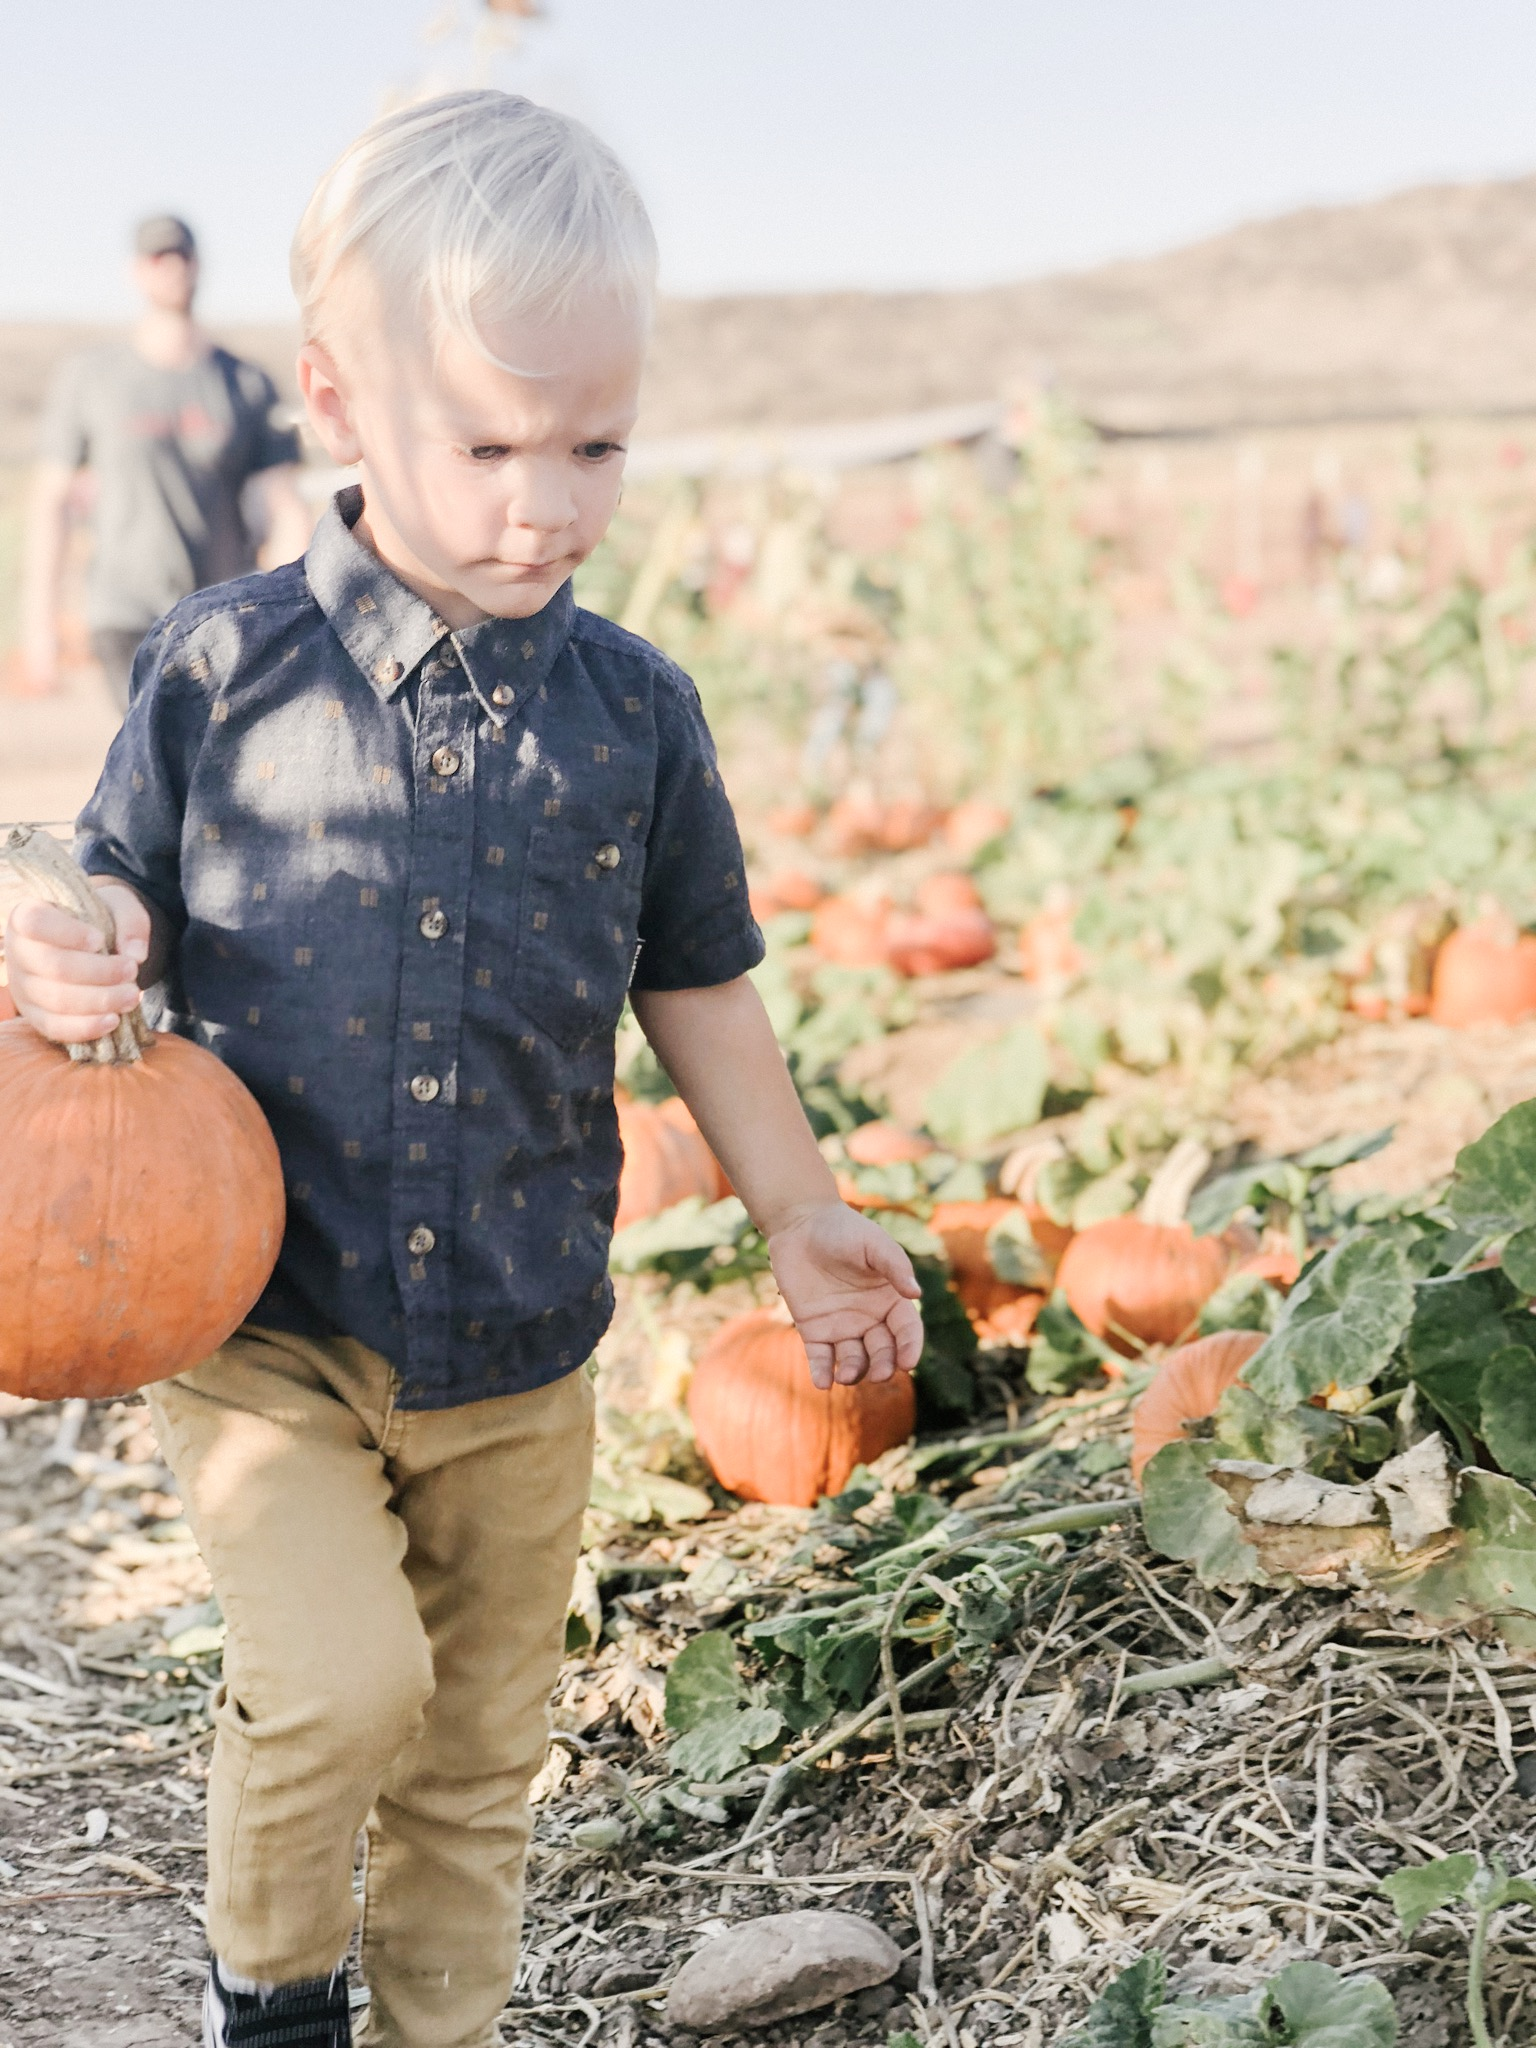 tanaka farms pumpkin patch2.JPG